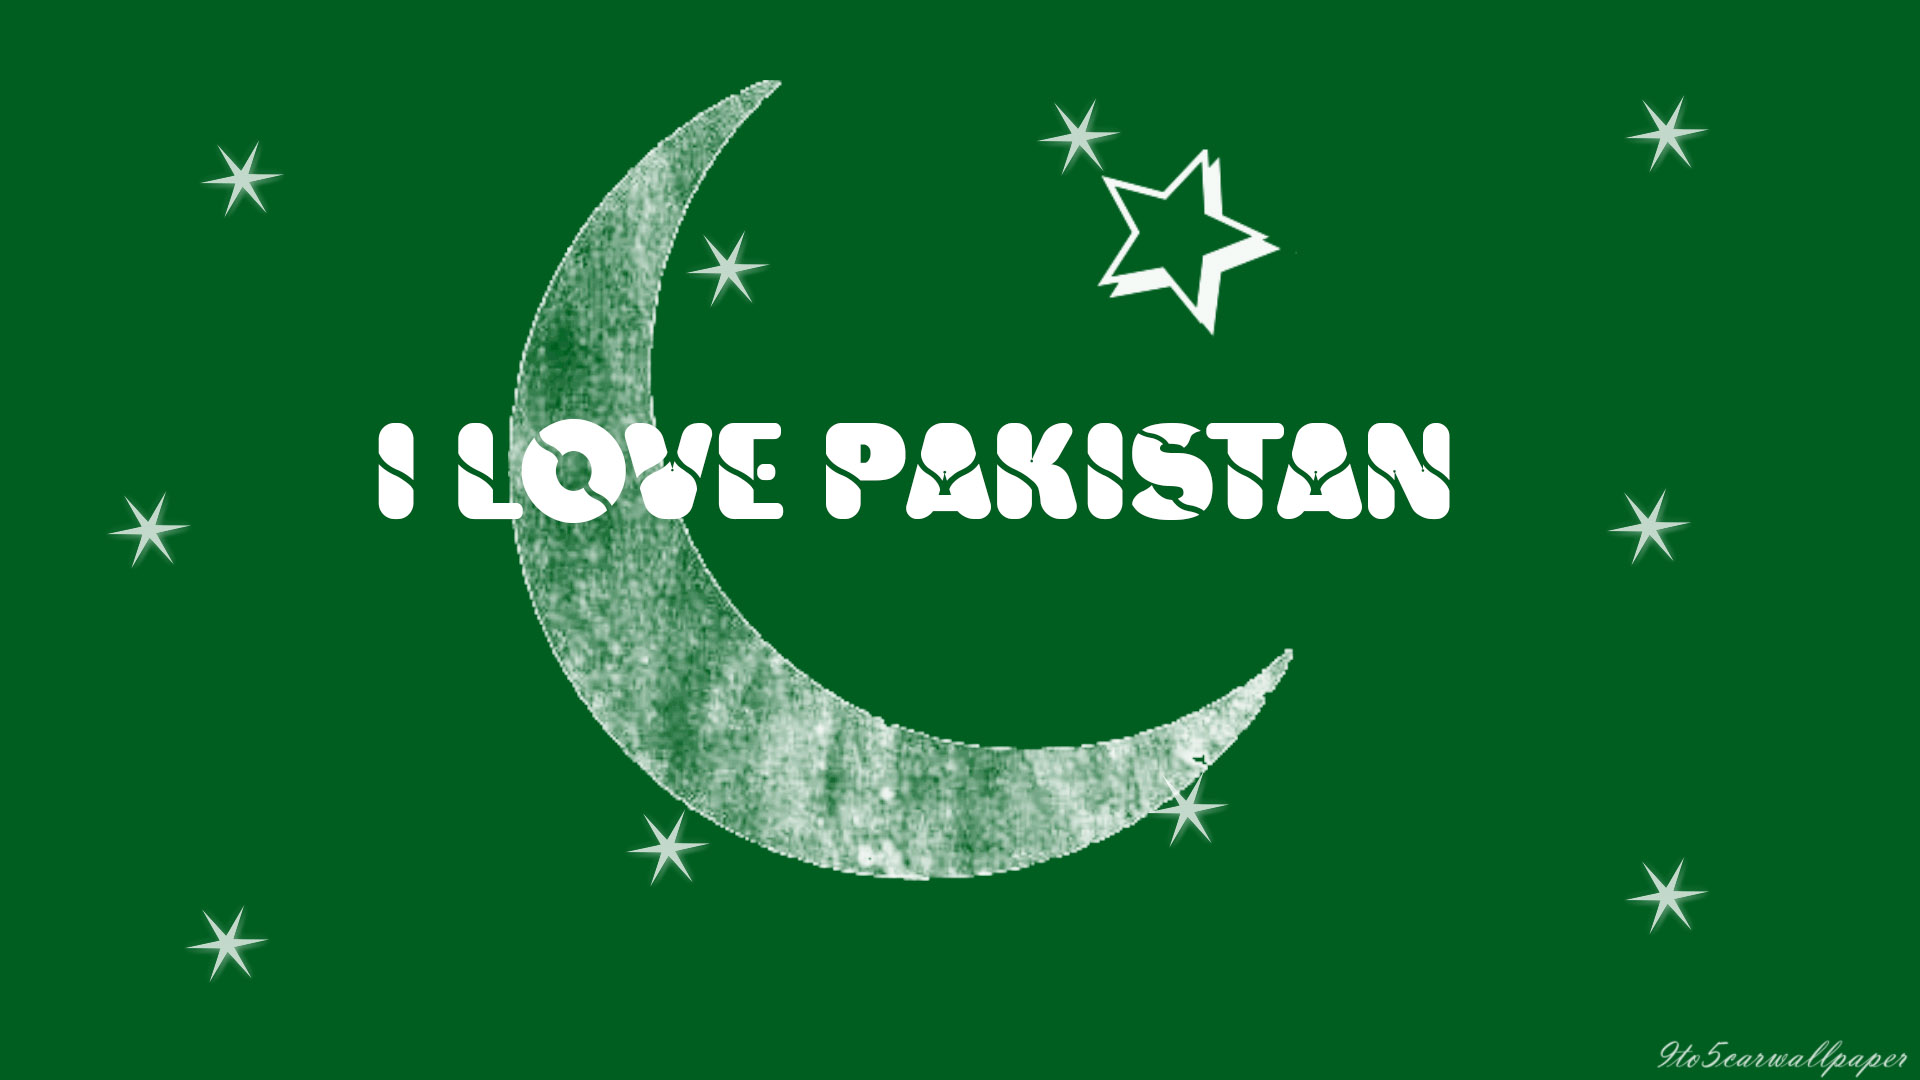 Love Wallpapers Pk : I Love Pakistan Independence Day cards & Hd Wallpapers